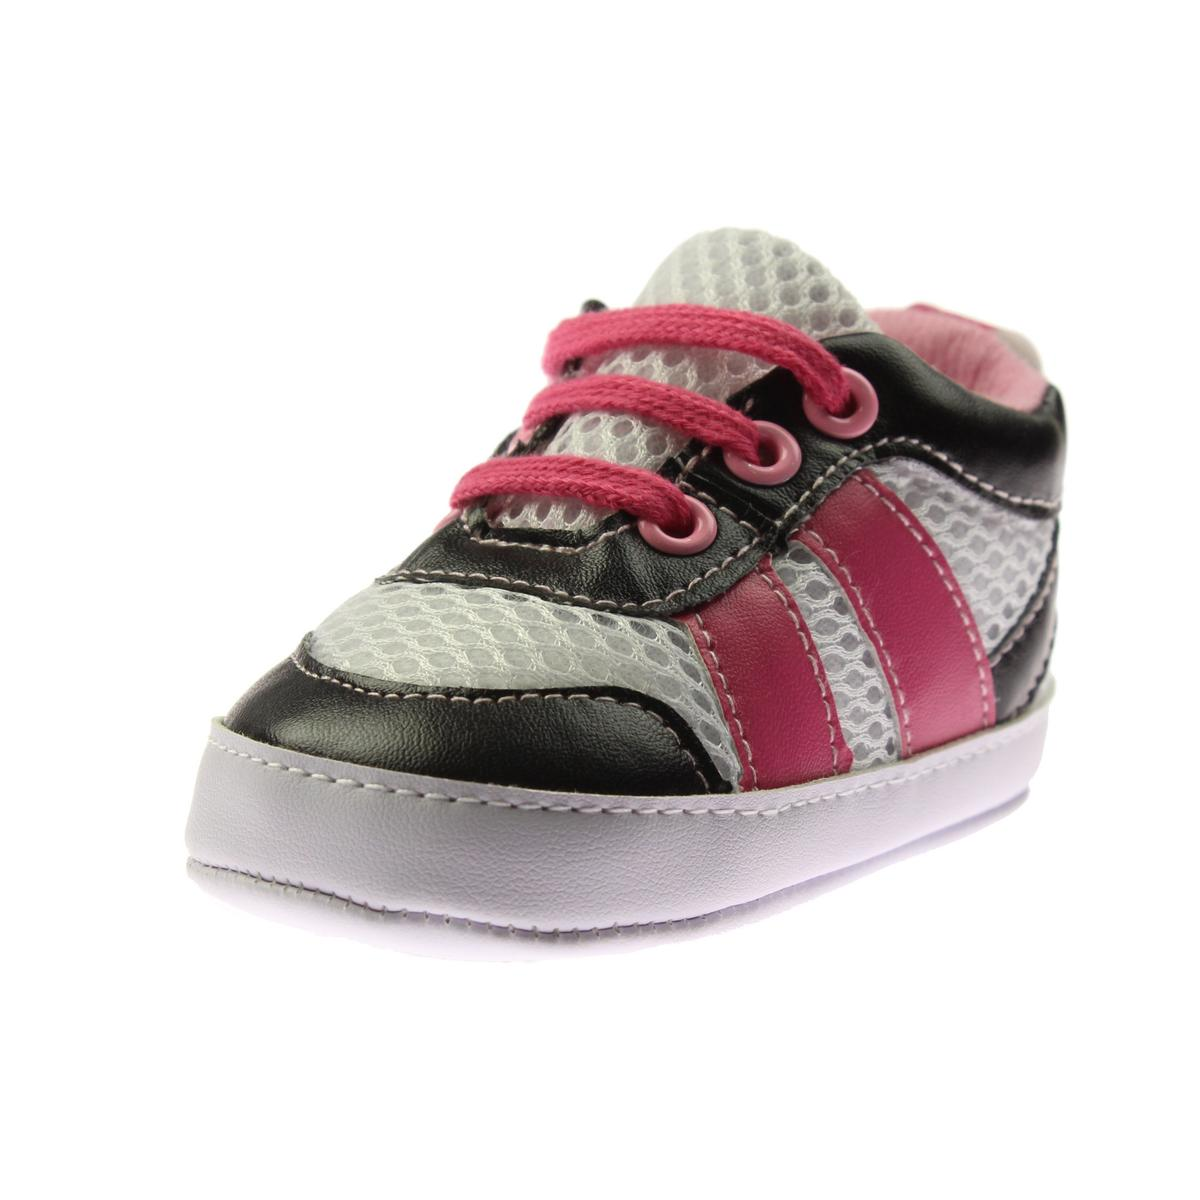 Rosie Pope Kids Footwear I See You Infant Boys Crib Shoes Sneakers BHFO 6152